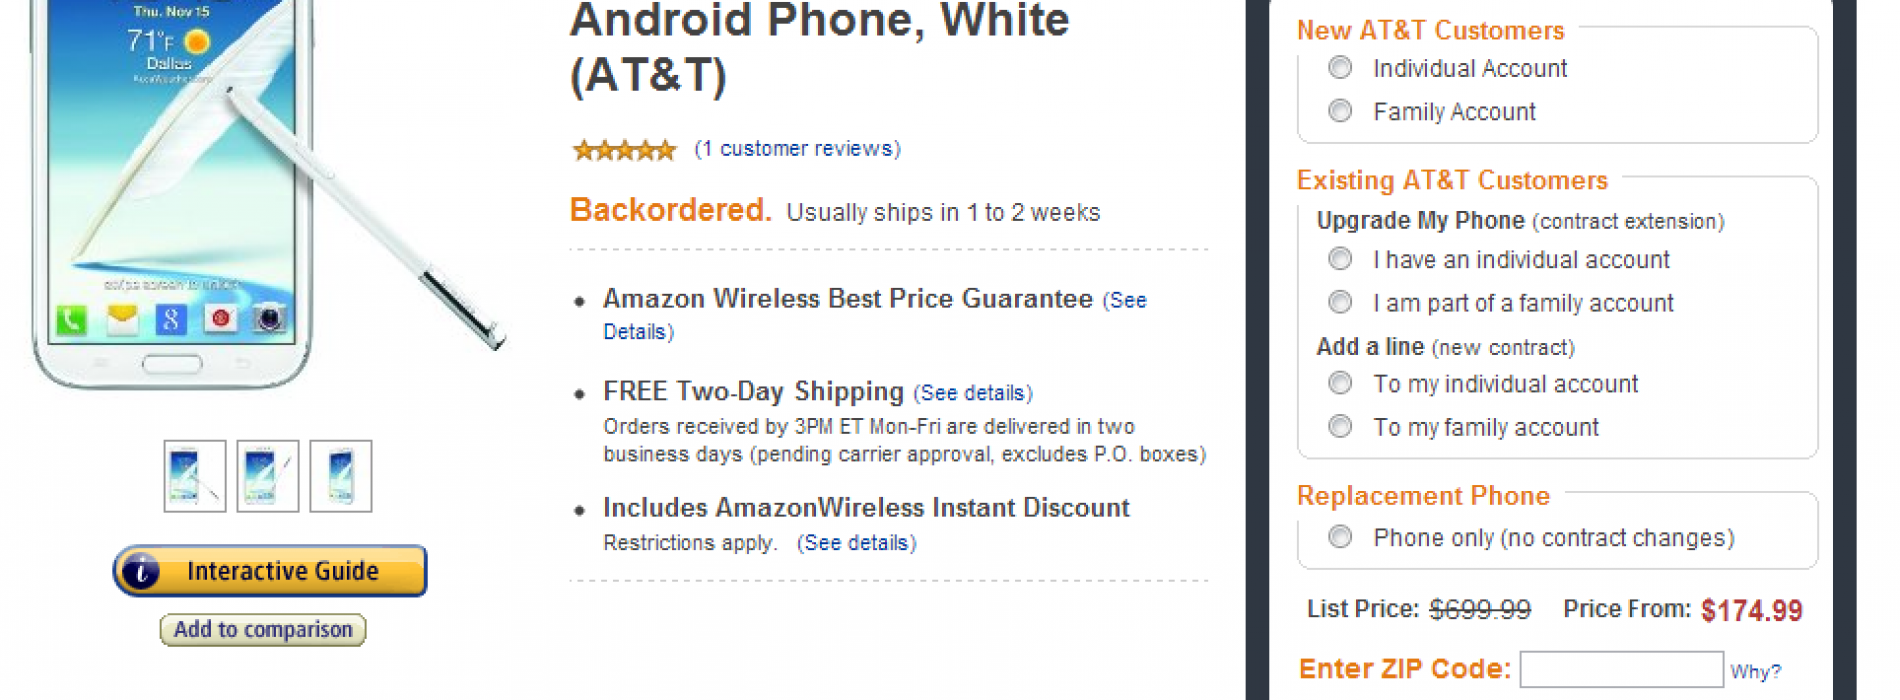 Galaxy Note II on sale: $175 for new customers, $200 for upgrade through Amazon Wireless